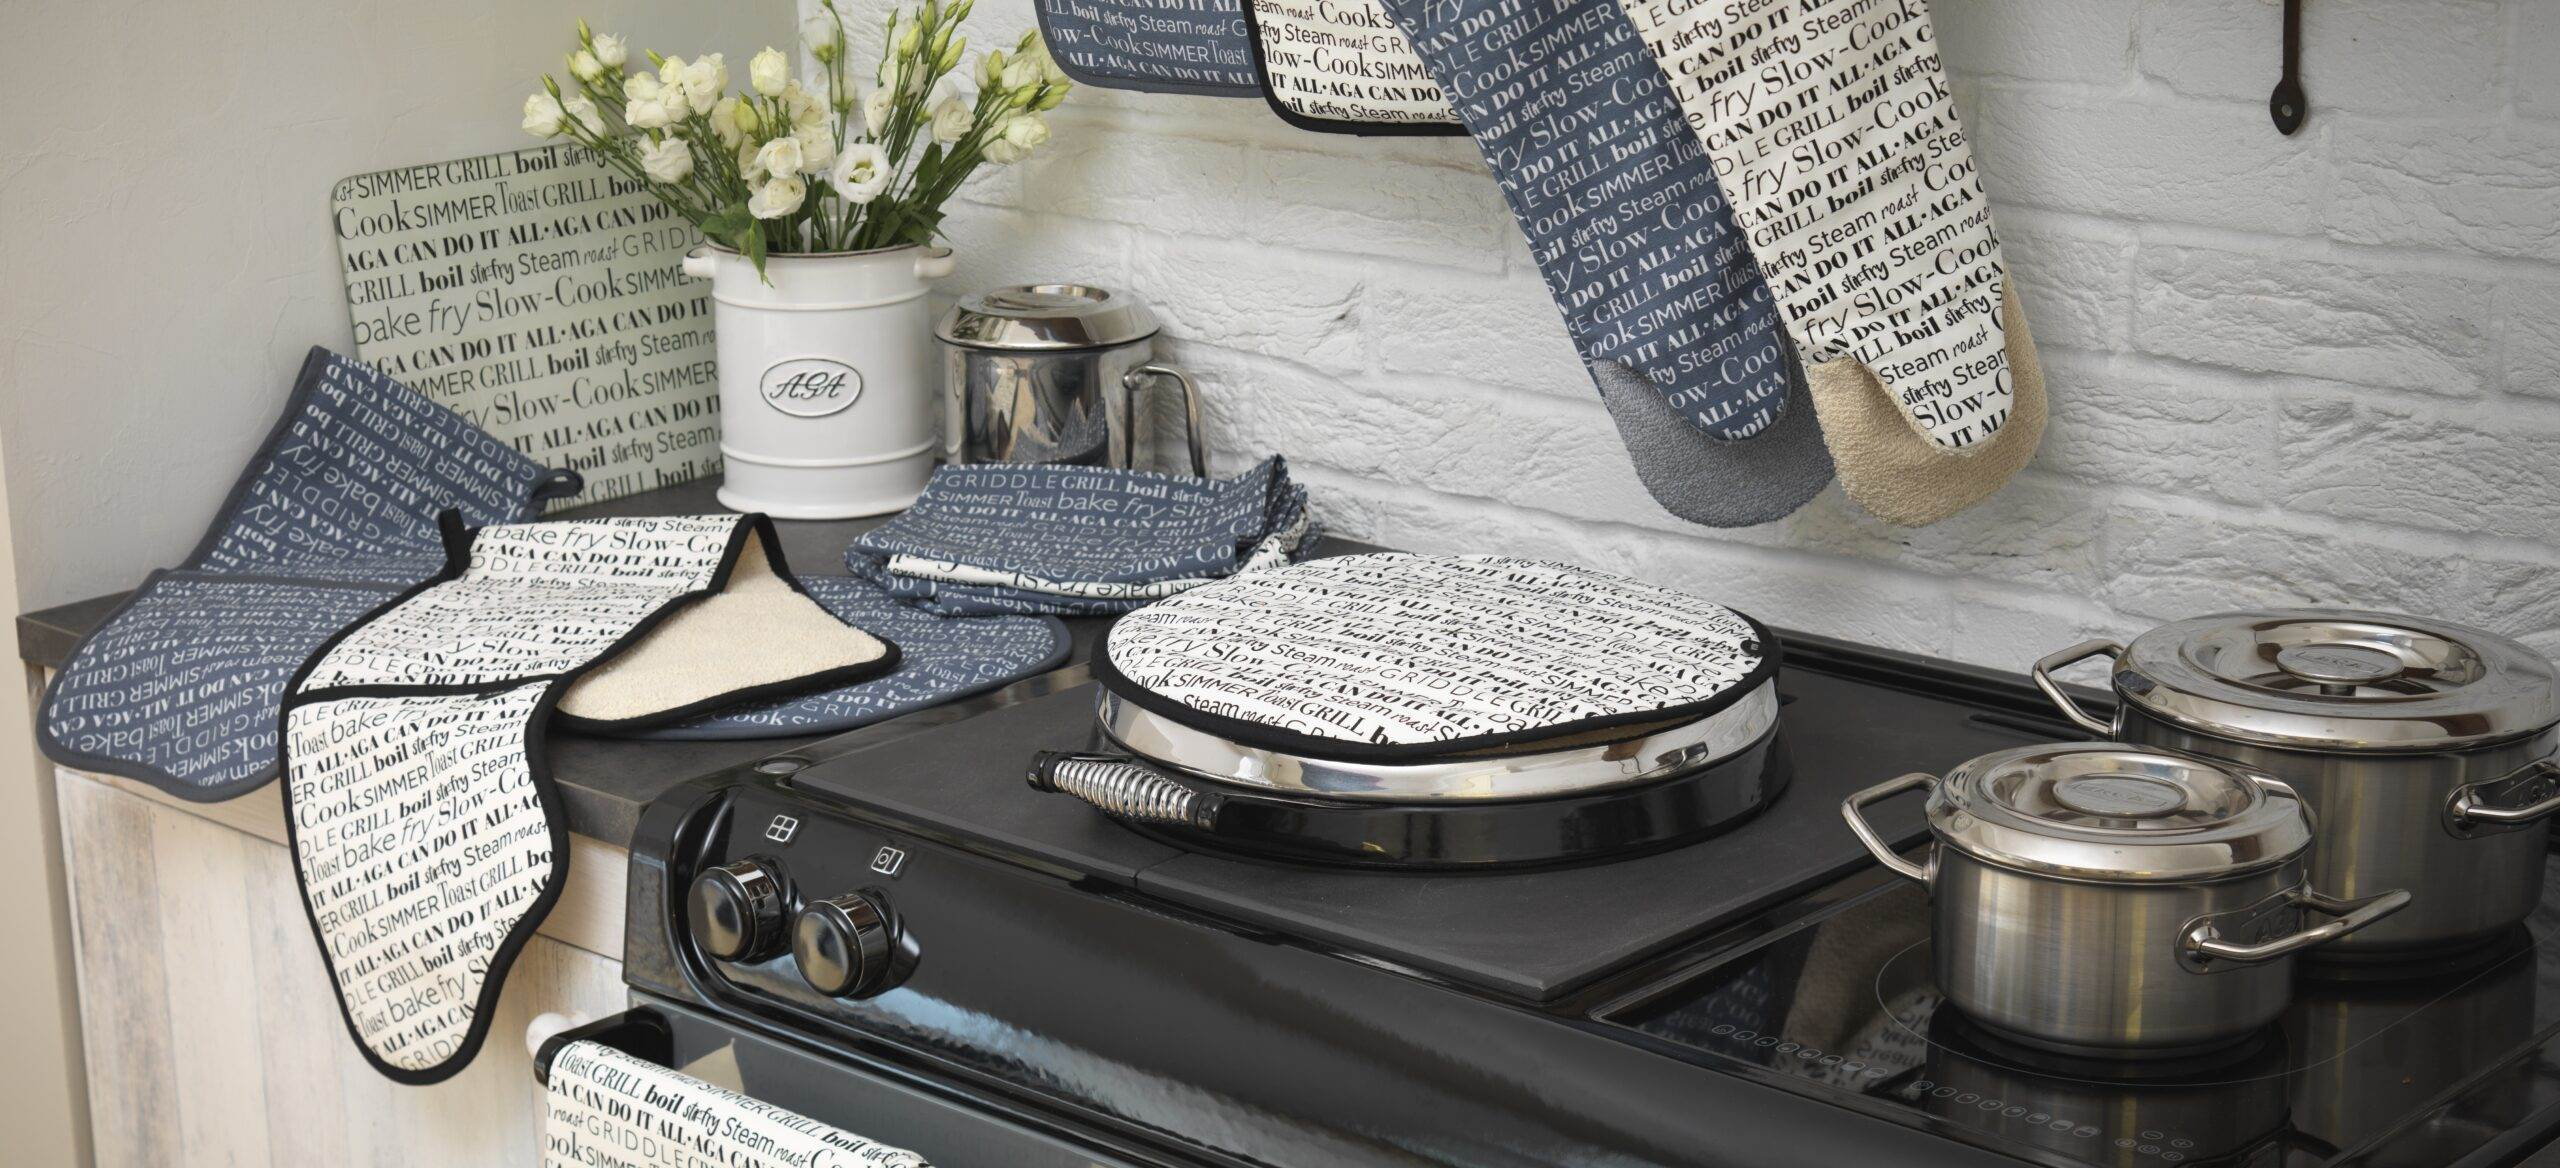 AGA cookshop product lifestyles